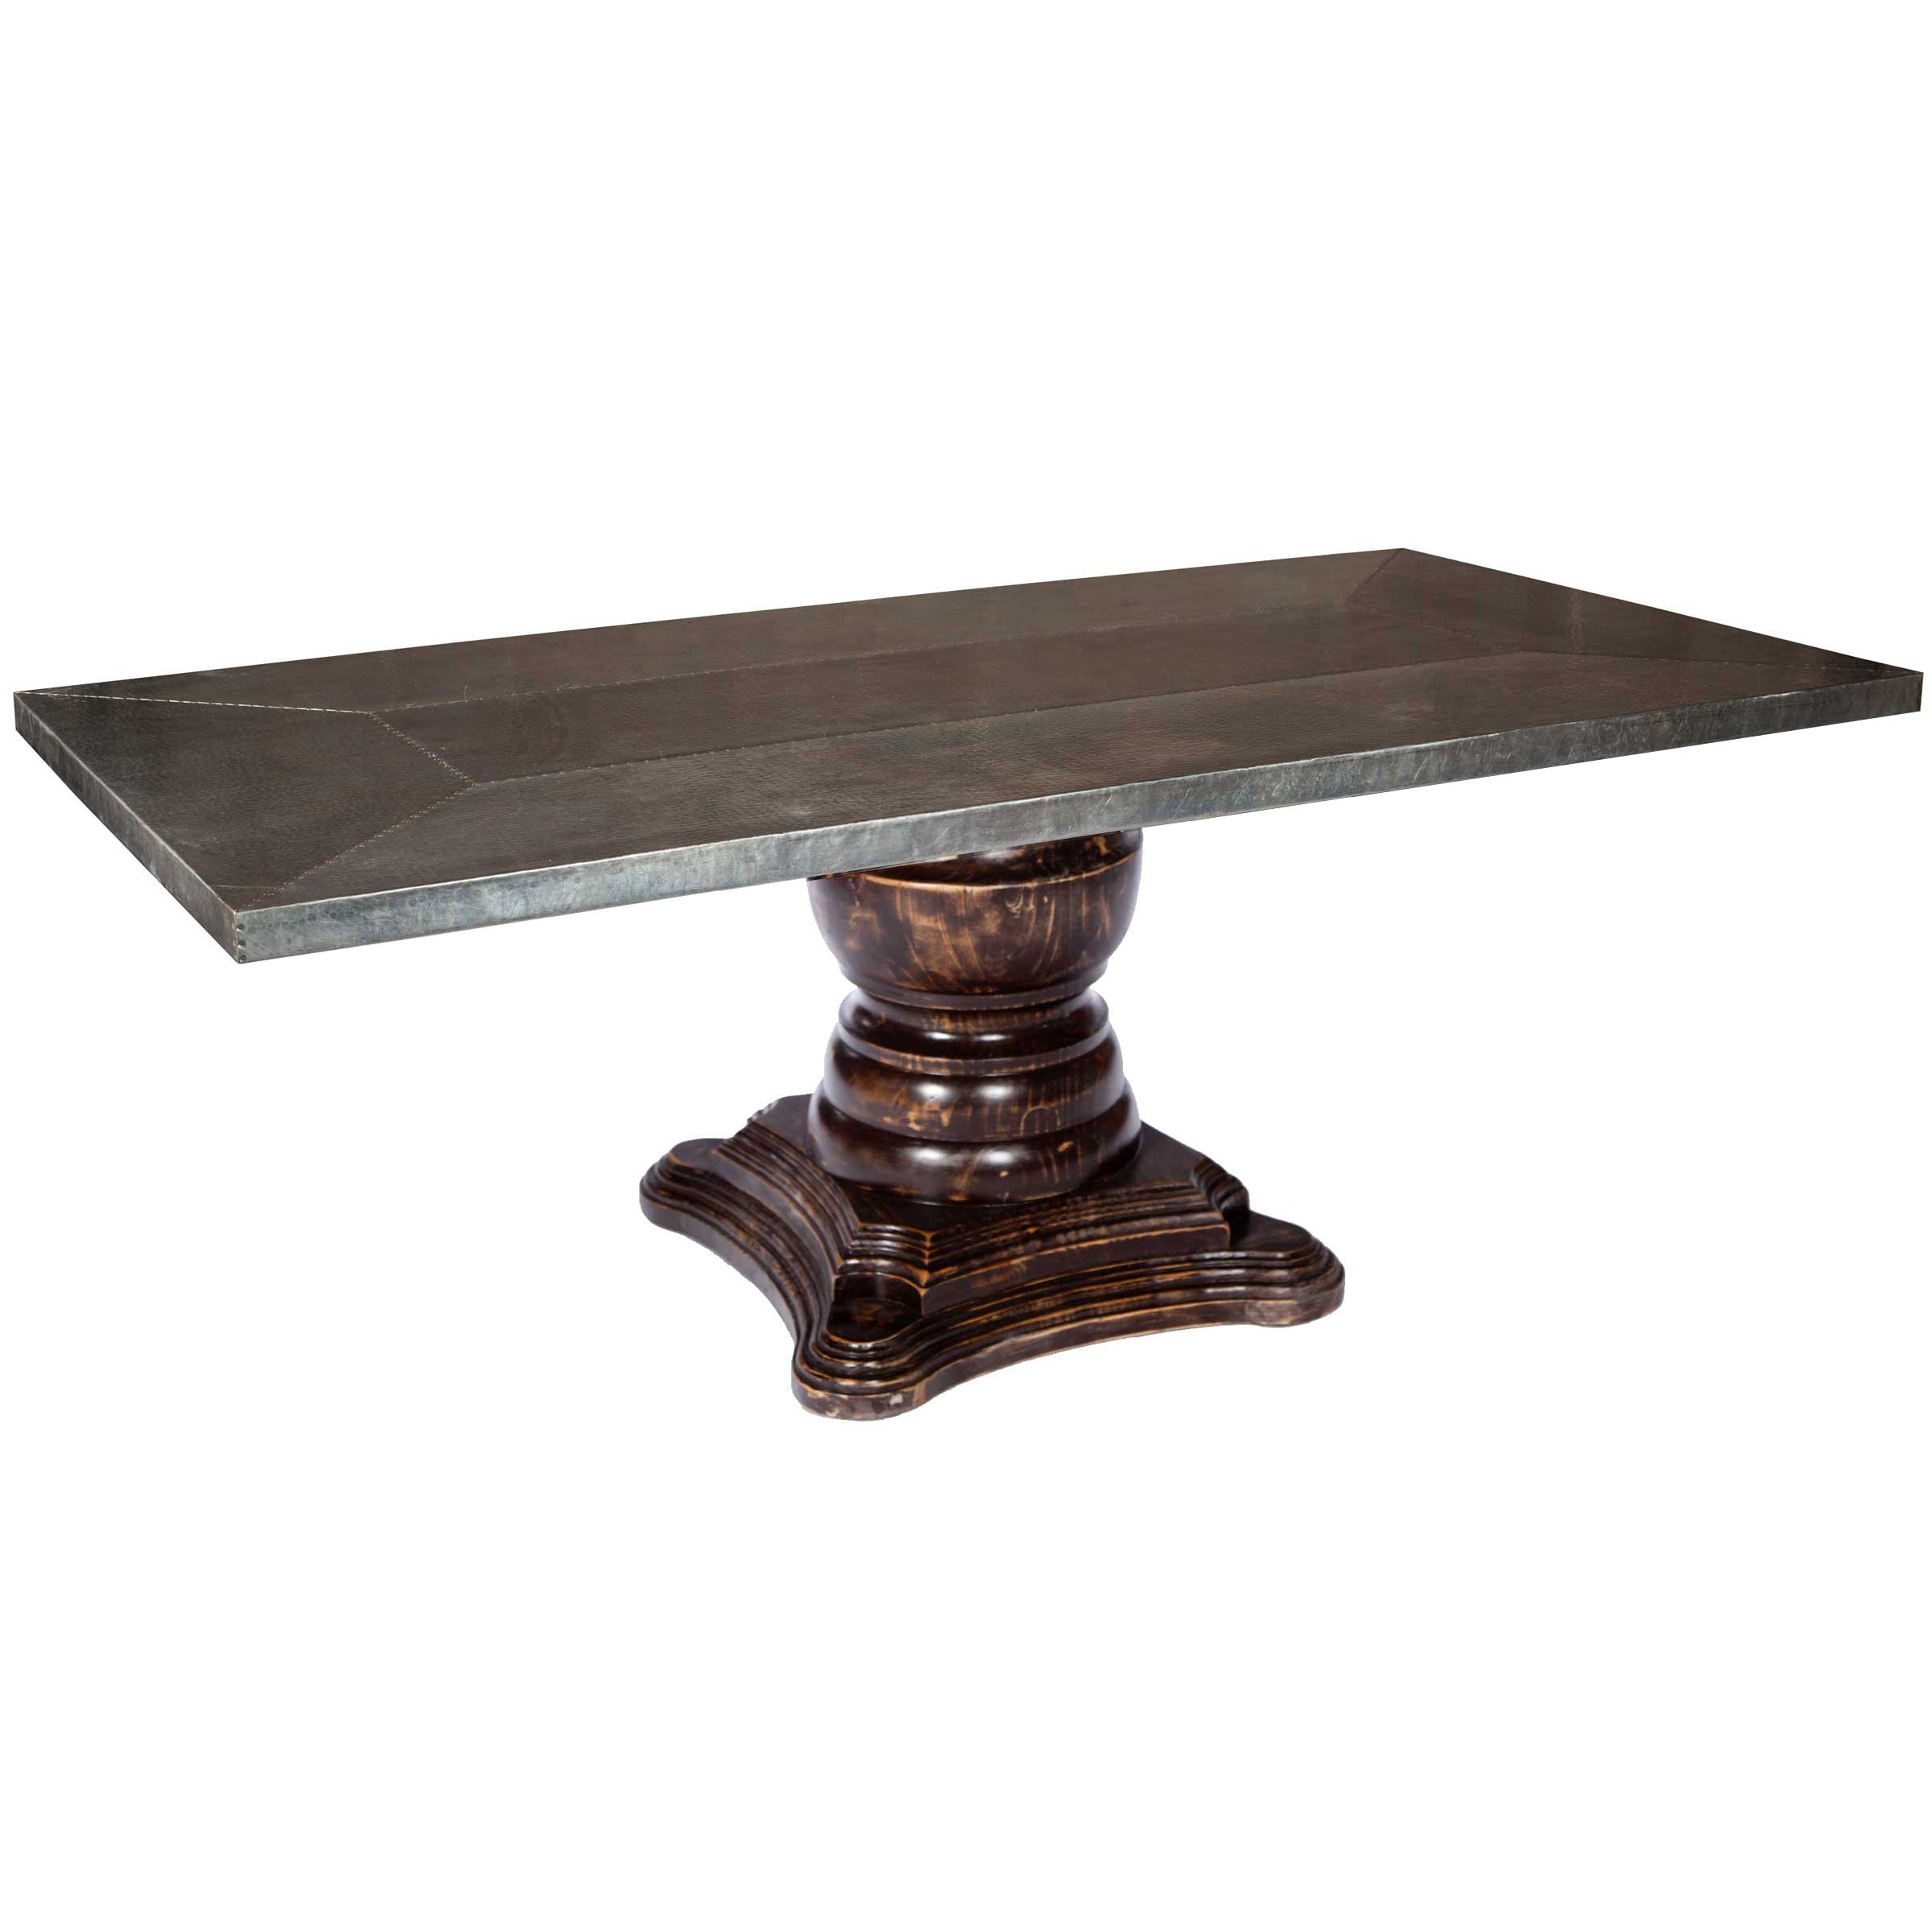 Zinc Top Dining Table Cheap With Awesome Llh Designs